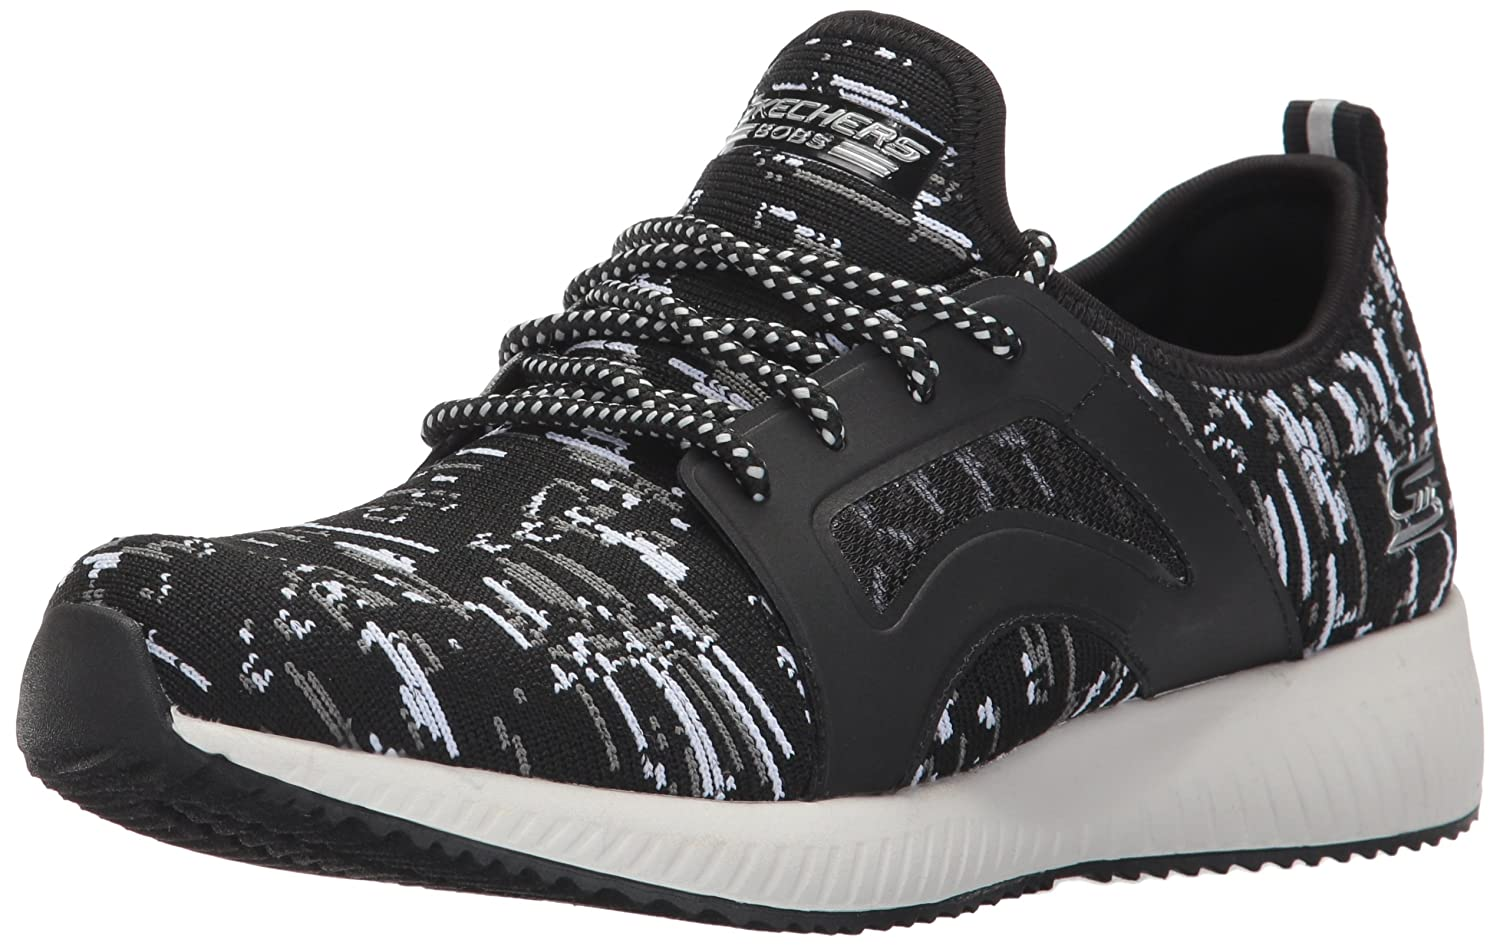 Skechers BOBS from Women's Bobs Squad-Double Dare Fashion Sneaker B01NARYCB4 8 B(M) US|Black/White